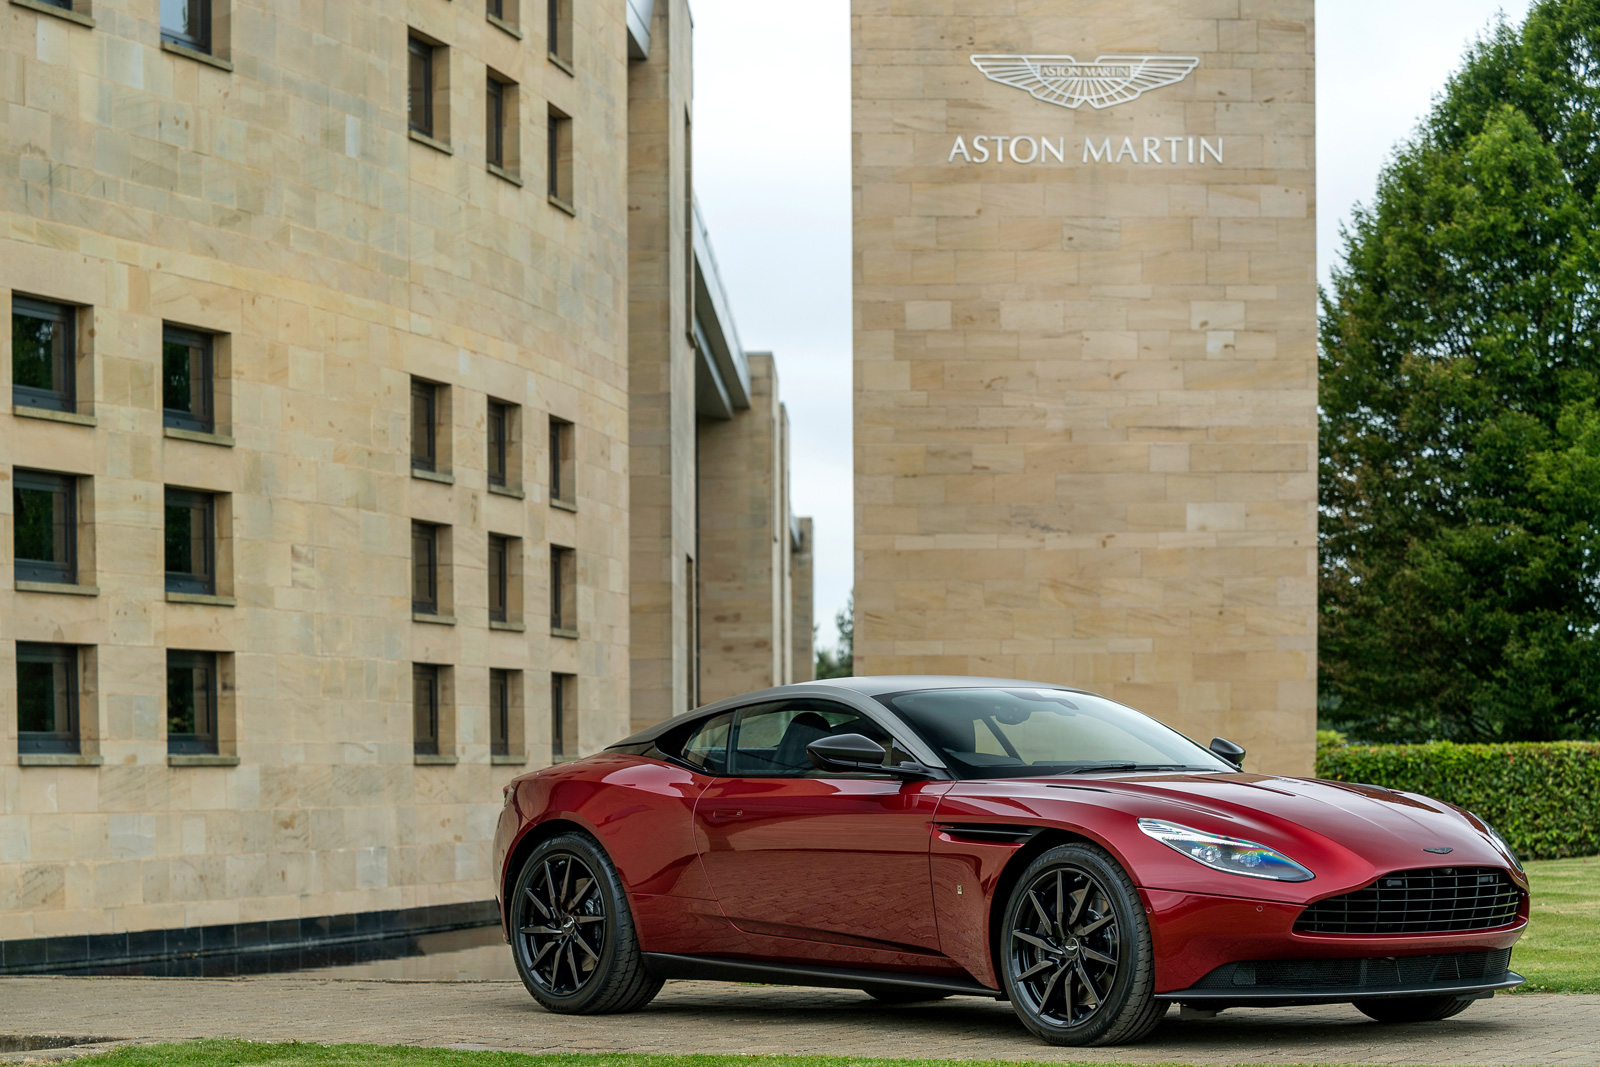 The Aston Martin DB11 is Now Inspired by Sailboats